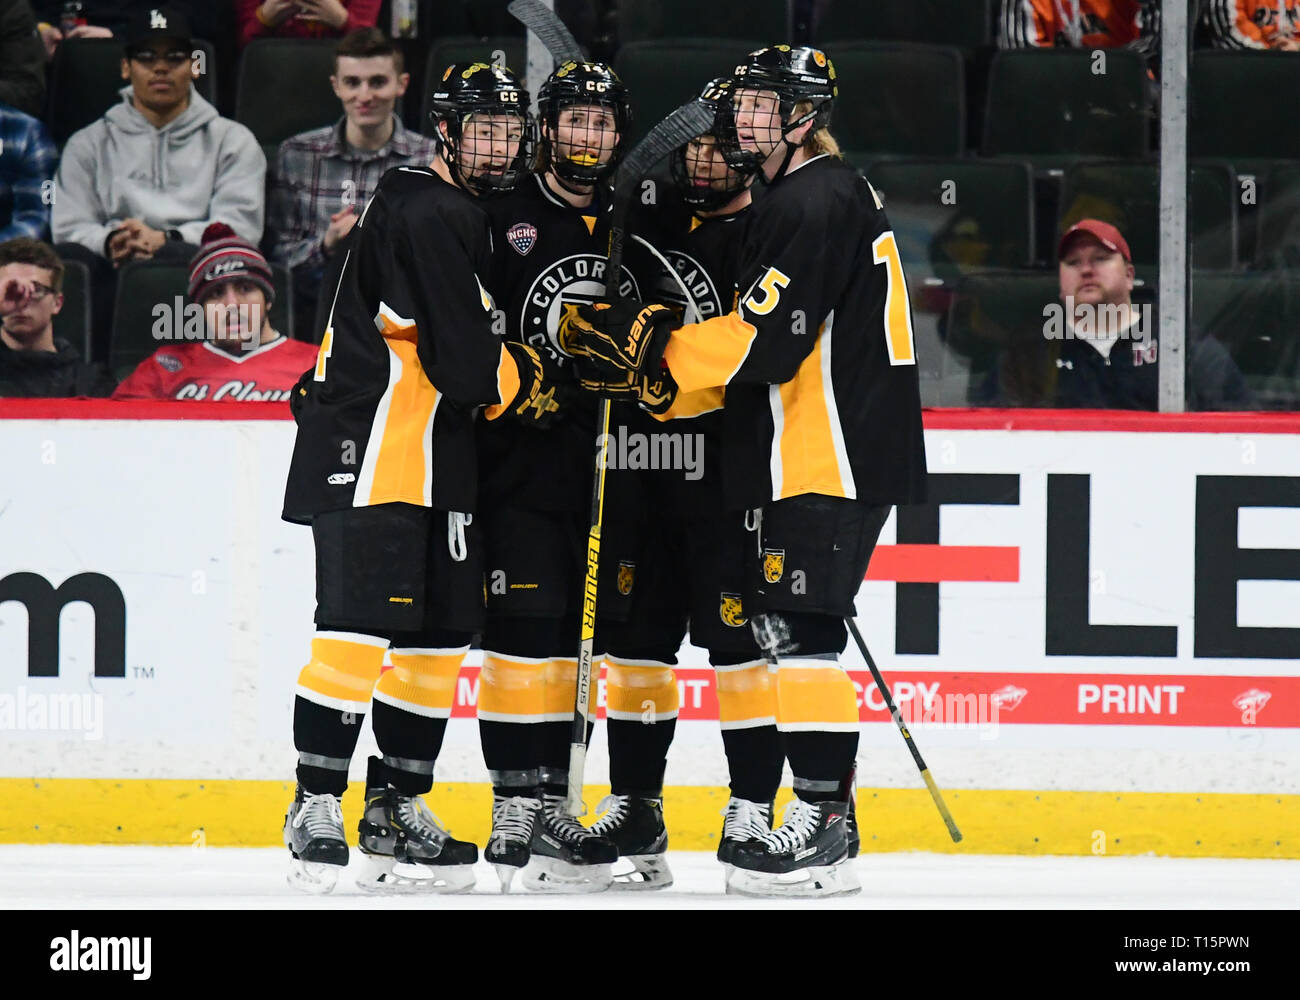 March 23, 2019 Colorado College players celebrate after scoring a goal in the first period of the NCHC Frozen Faceoff third place game between the Colorado College Tigers and the Denver Pioneers at the Xcel Energy Center, St. Paul, MN. Photo by Russell Hons/CSM - Stock Image